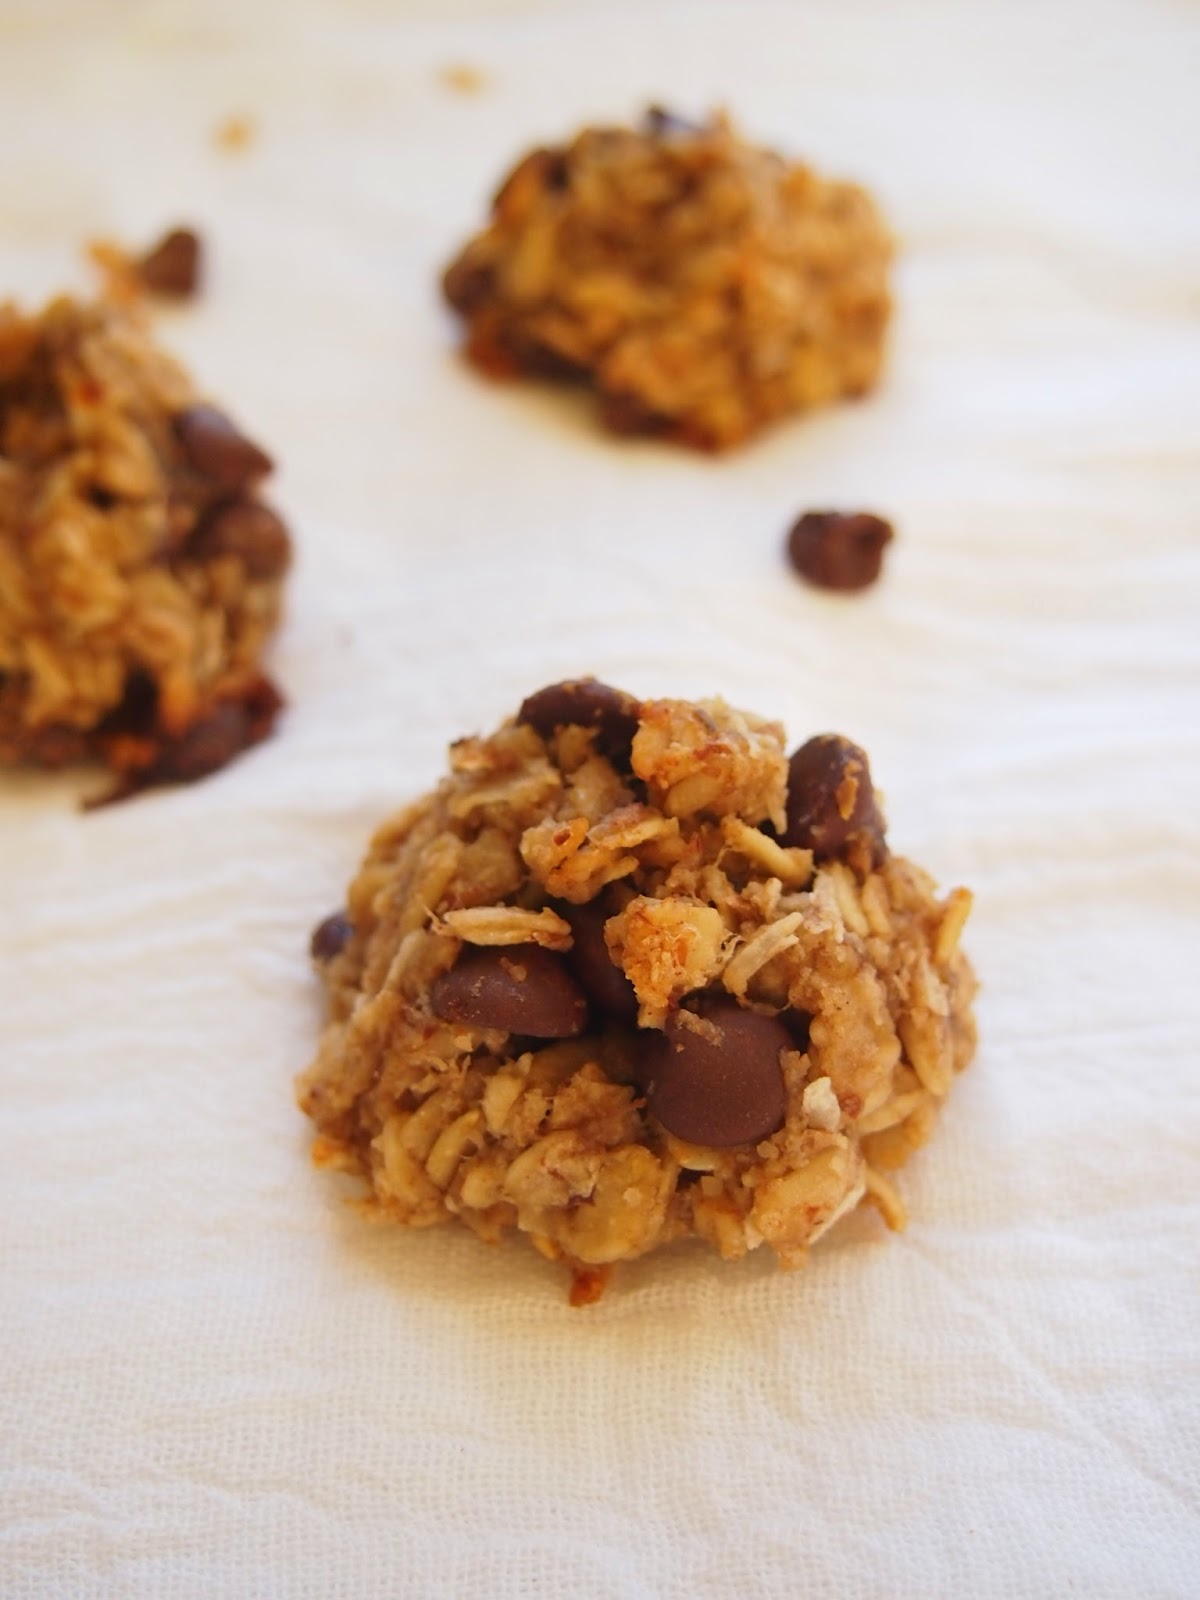 no added sugar chocolate chip oatmeal cookies